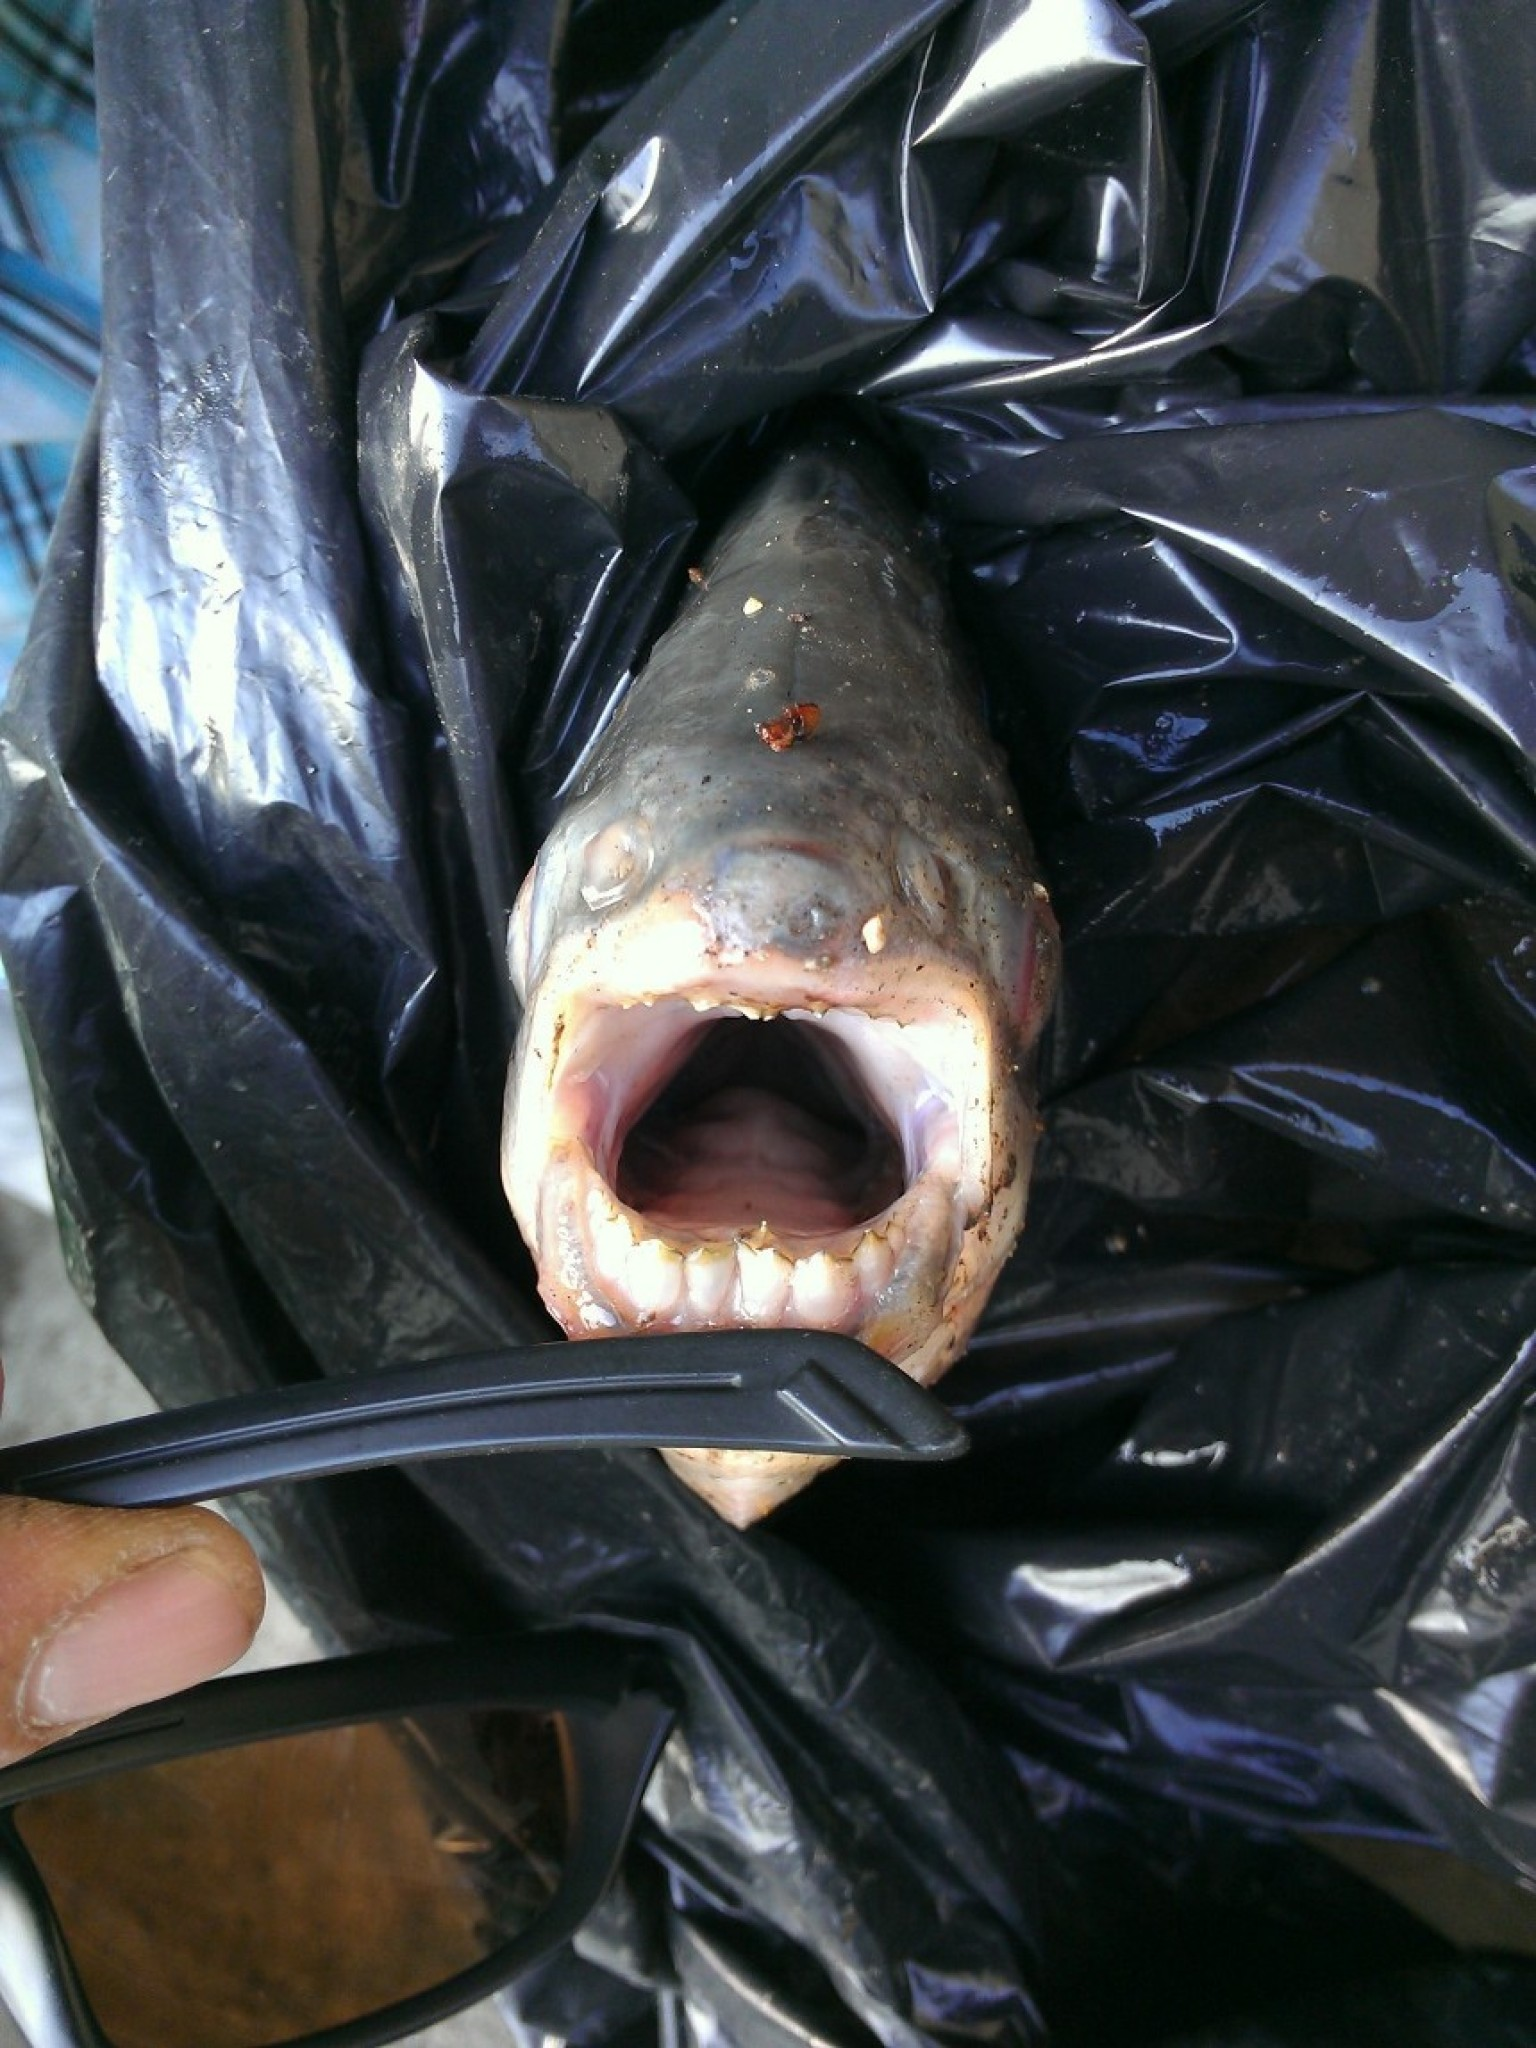 Pacu testicle biting fish caught near paris in the seine for What fish are biting this time of year